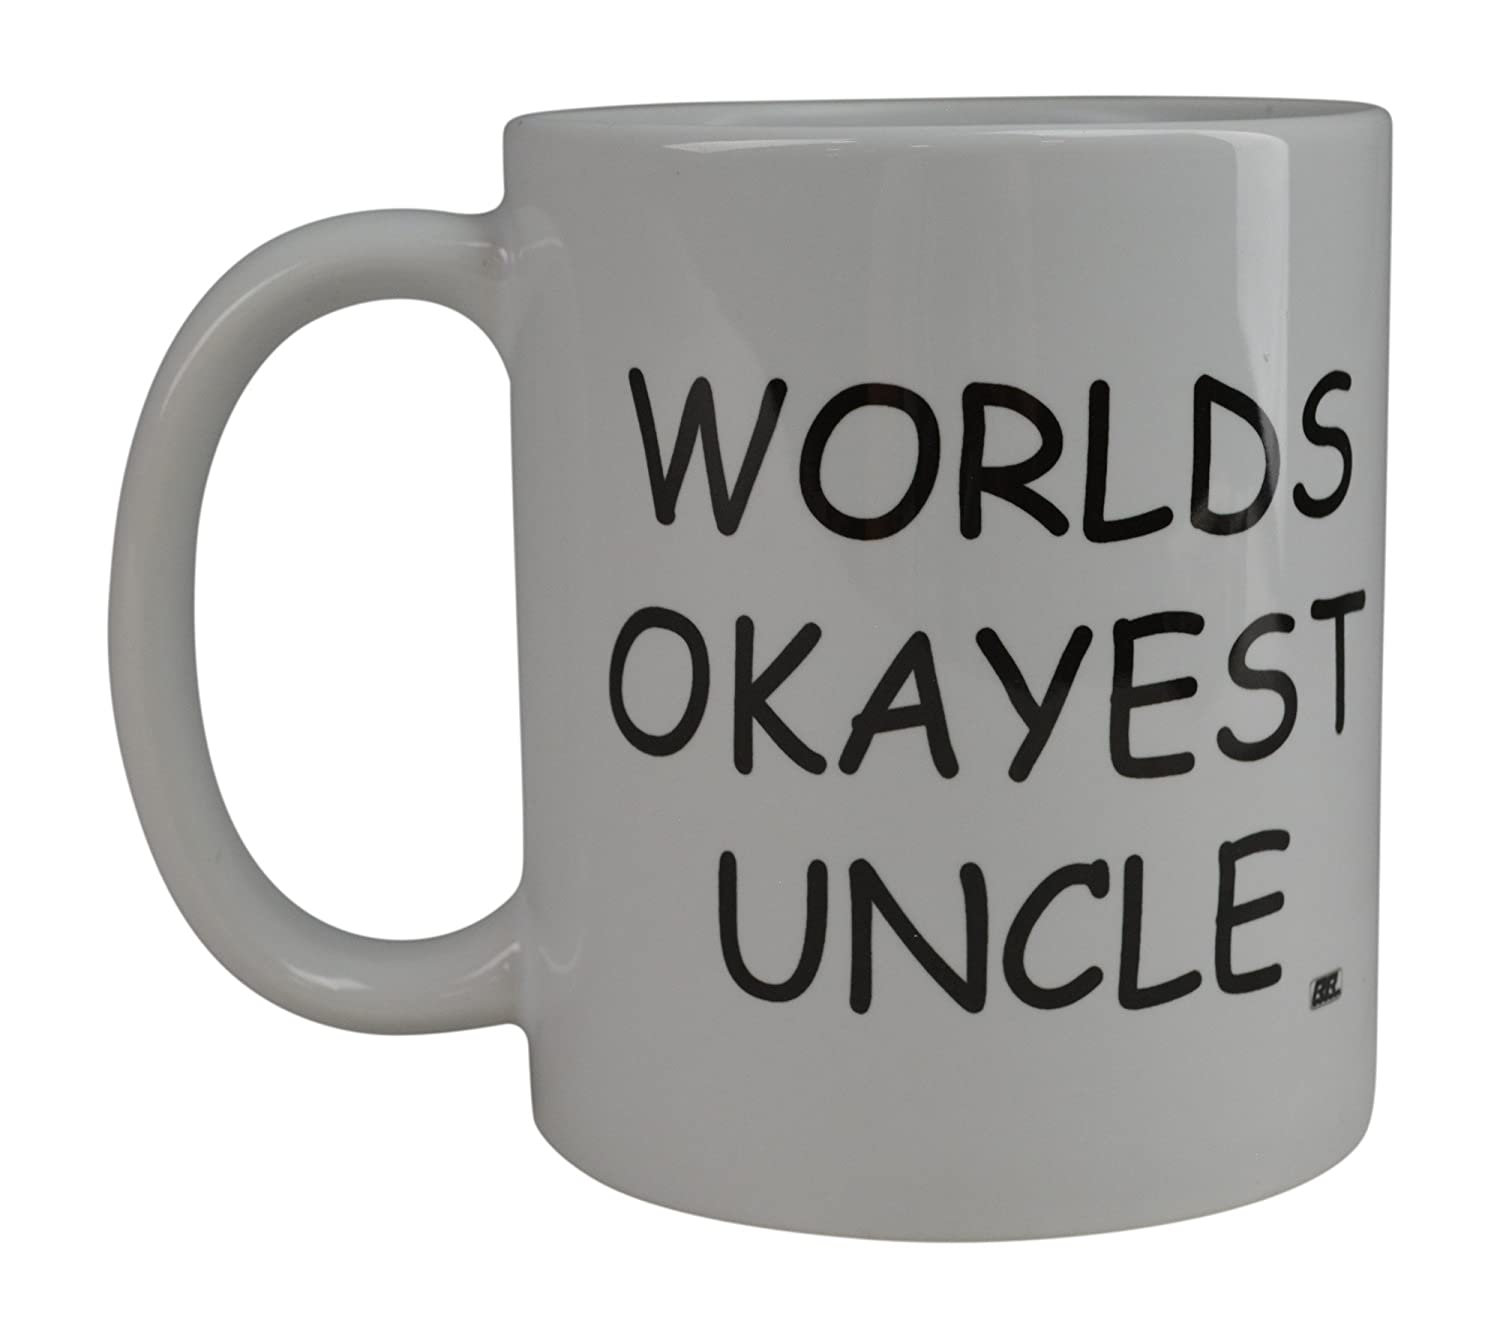 Rogue River Funny Coffee Mug Wolds Okayest Uncle Novelty Cup Great Gift Idea For Office Gag White Elephant Gift Humor Uncle Rogue River Tactical RR-1058